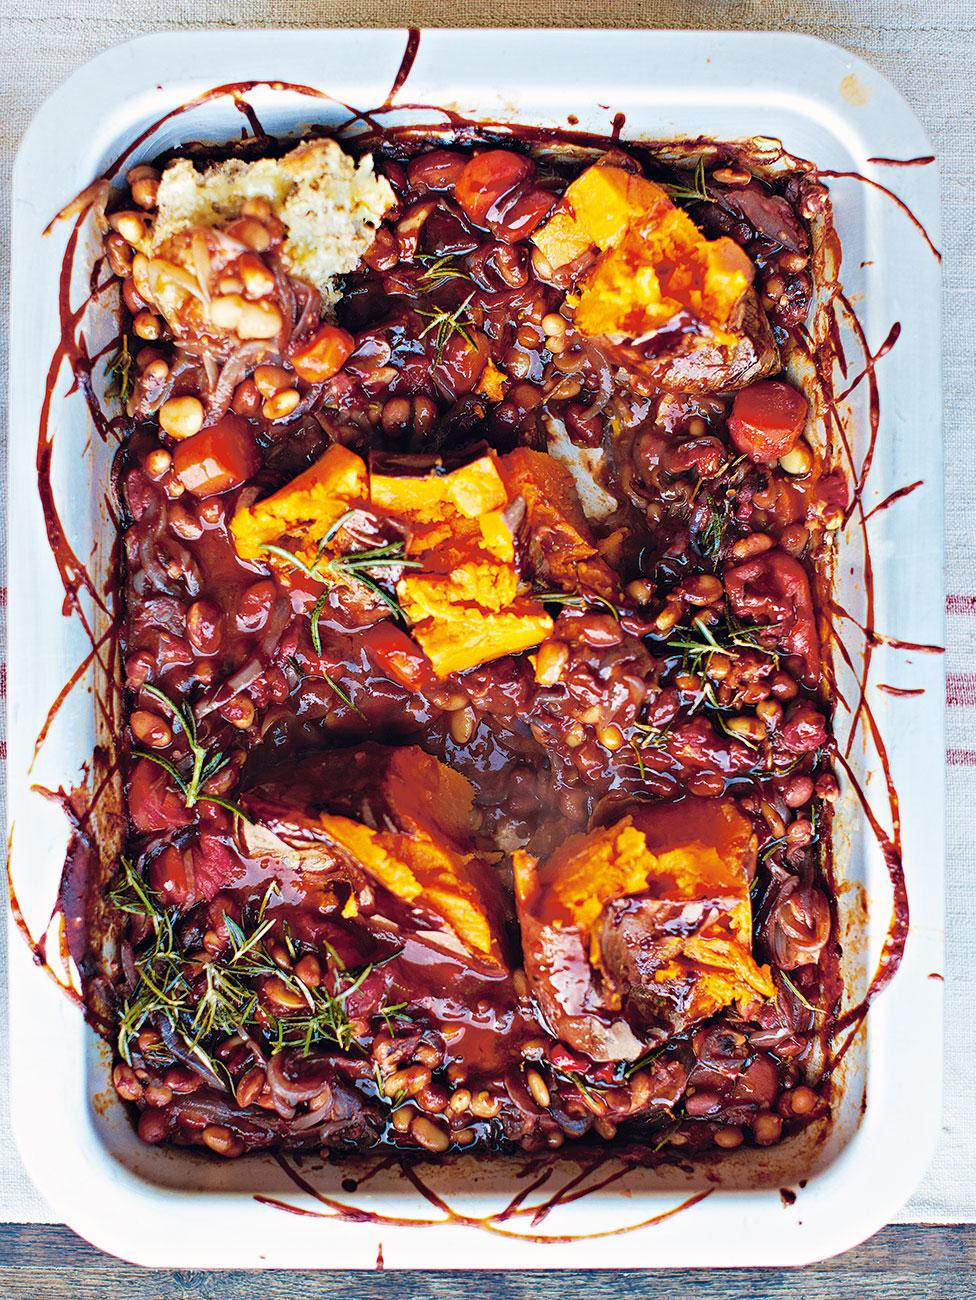 #Recipeoftheday is homemade BBQ baked beans with smashed sweet potatoes and killer croutons http://t.co/RAQzkmcHgu http://t.co/KTxiXbWbZb